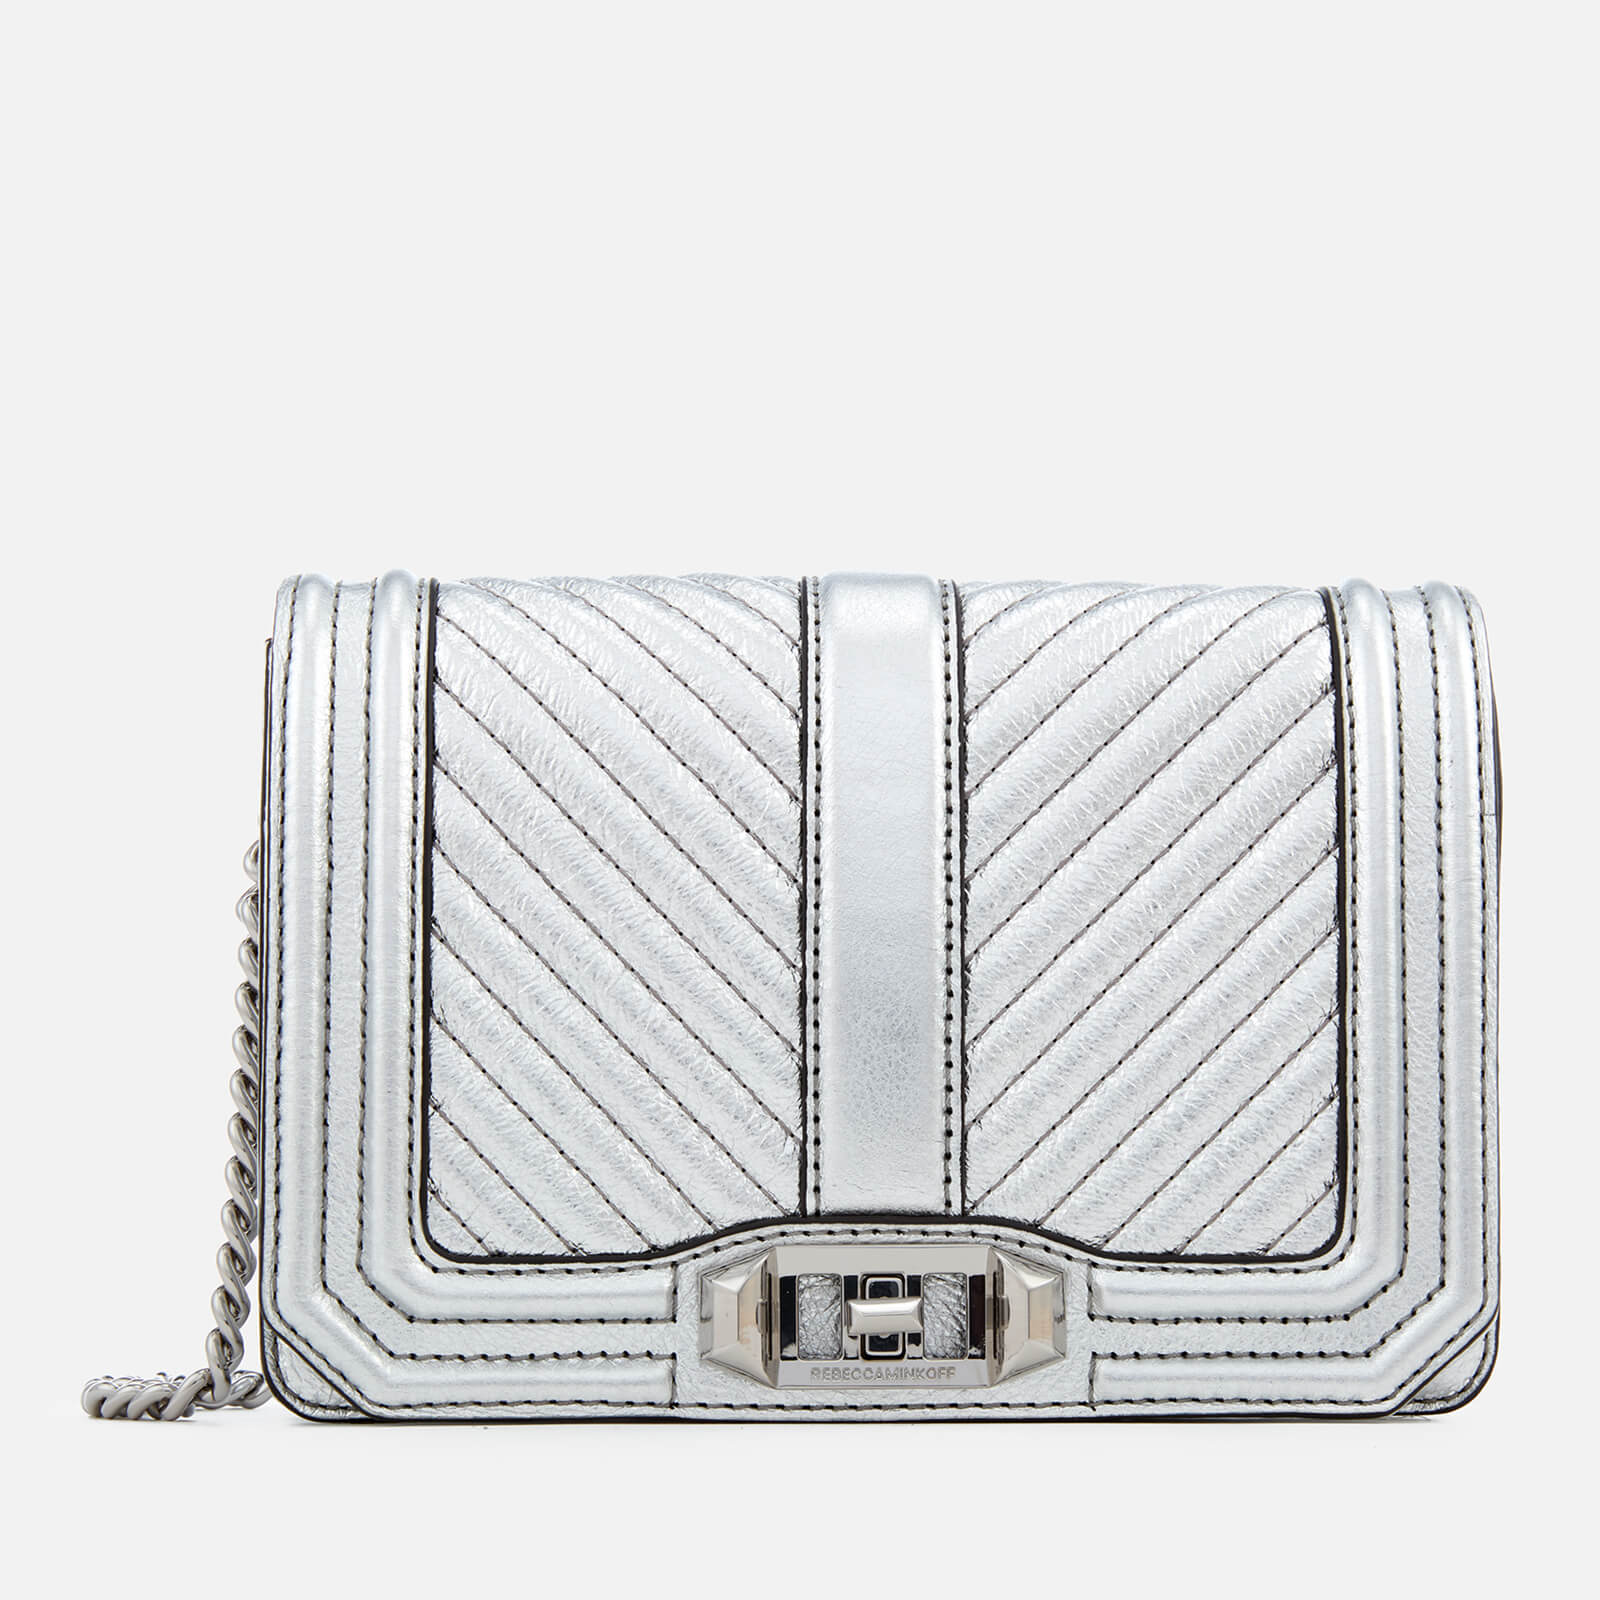 719dd4464accc Rebecca Minkoff Women s Chevron Quilted Small Love Cross Body Bag - Silver  - Free UK Delivery over £50